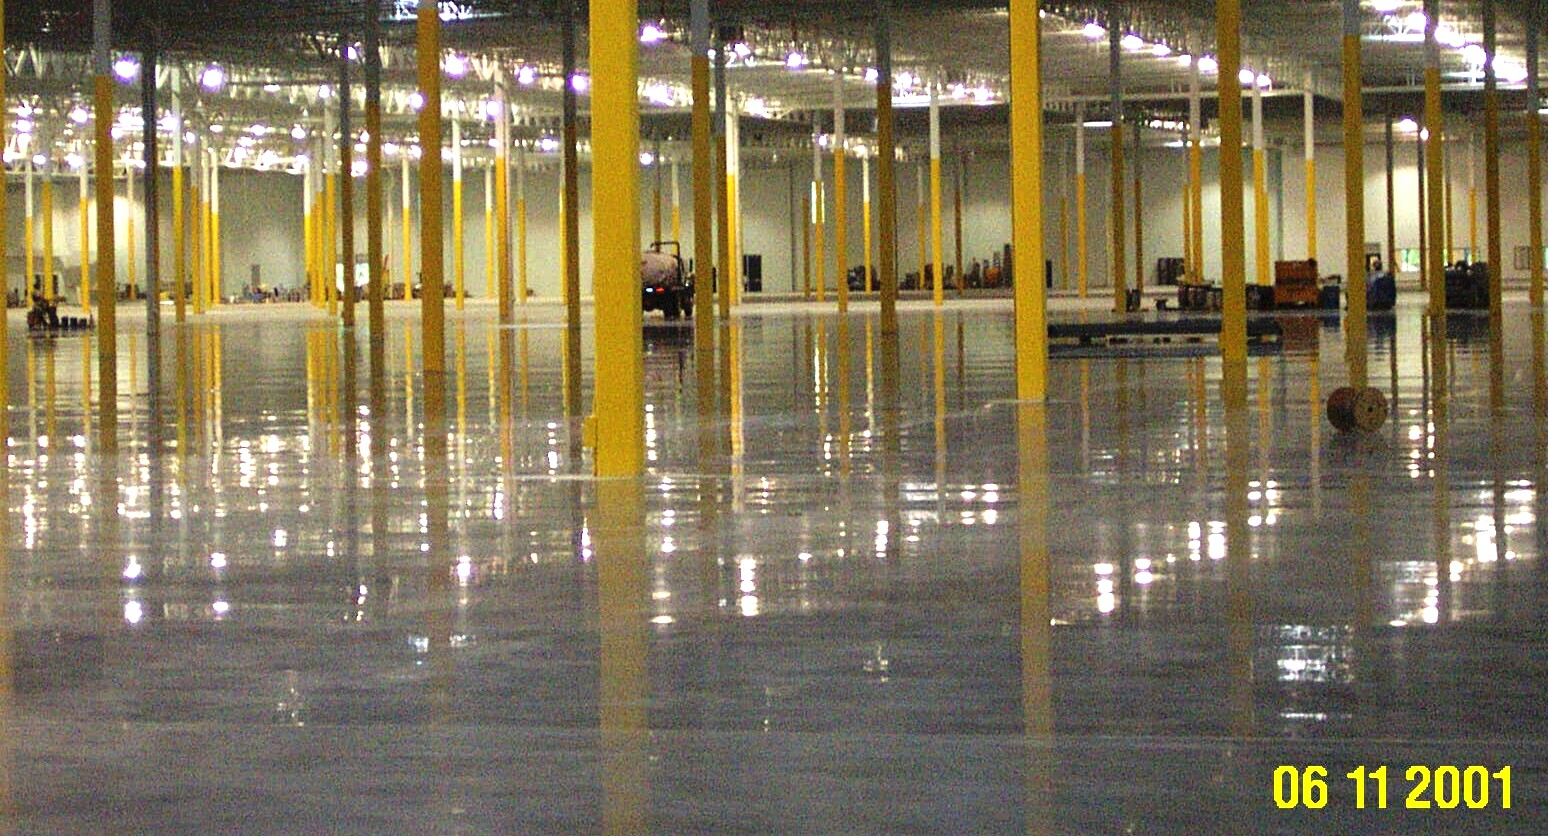 Yellow columns rise from a polished concrete floor in a Volkswagen parts warehouse in WI.